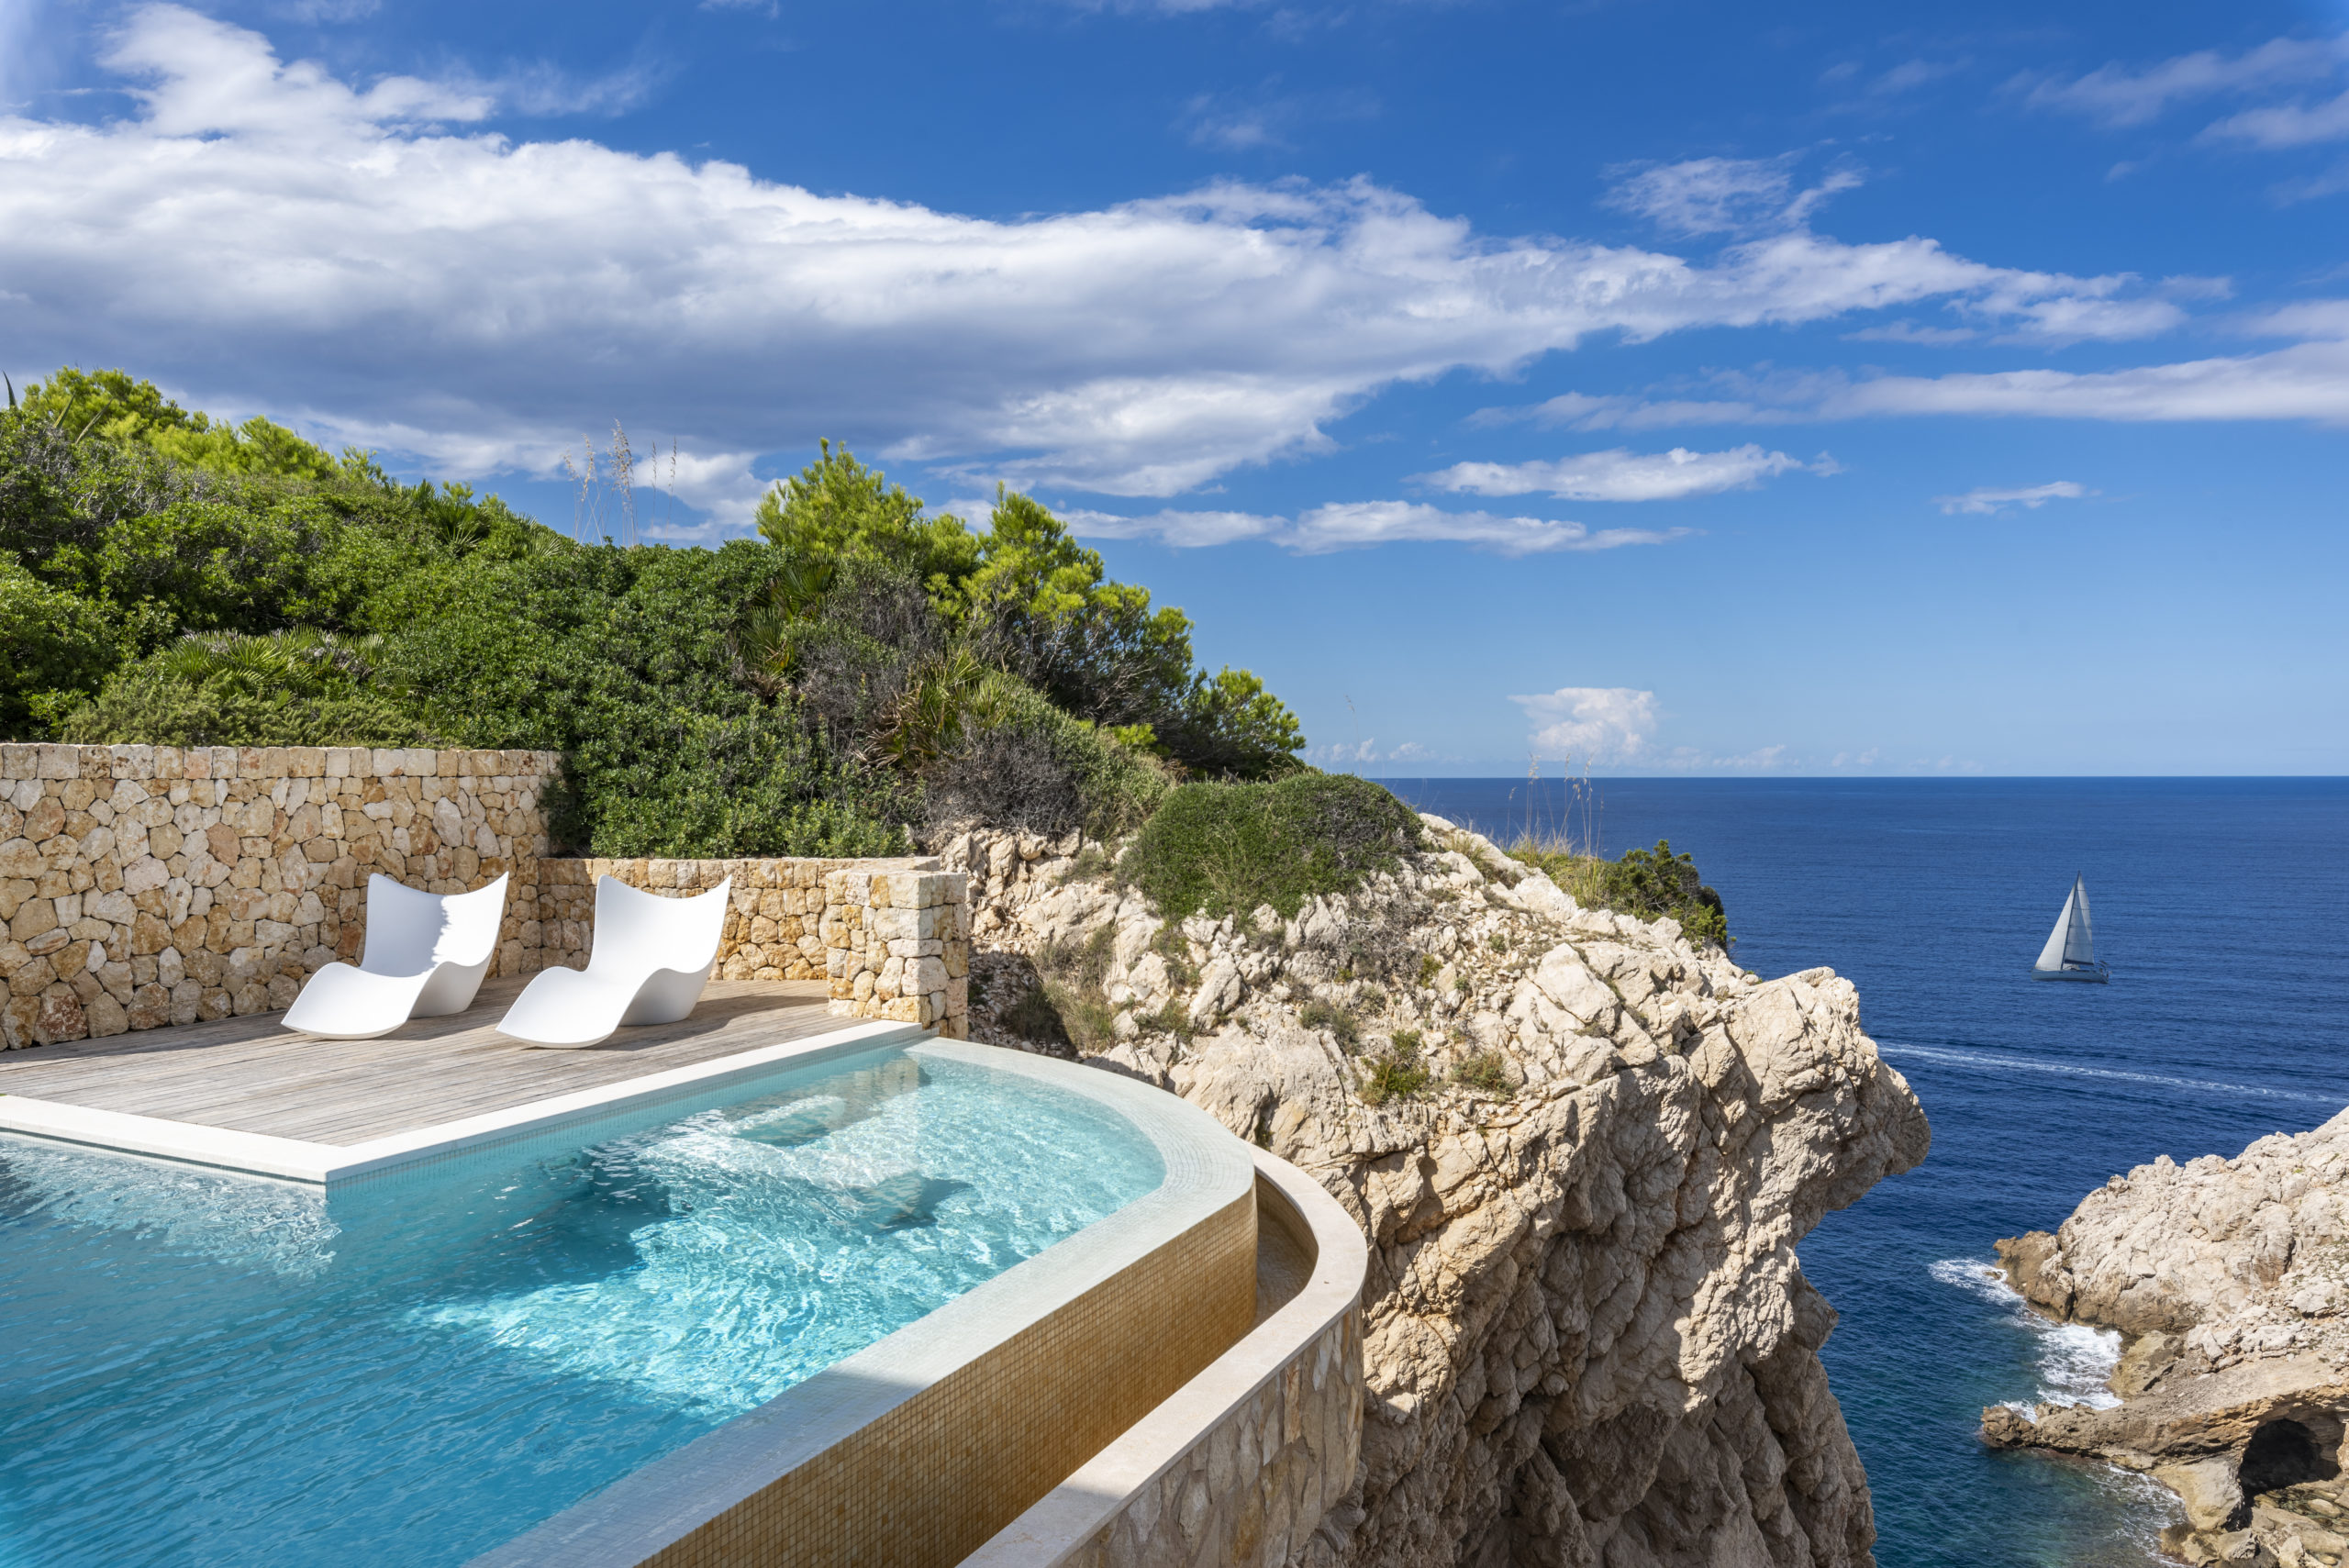 Despite the slump in tourist numbers, prices for vacation properties have remained largely stable since the beginning of the pandemic.